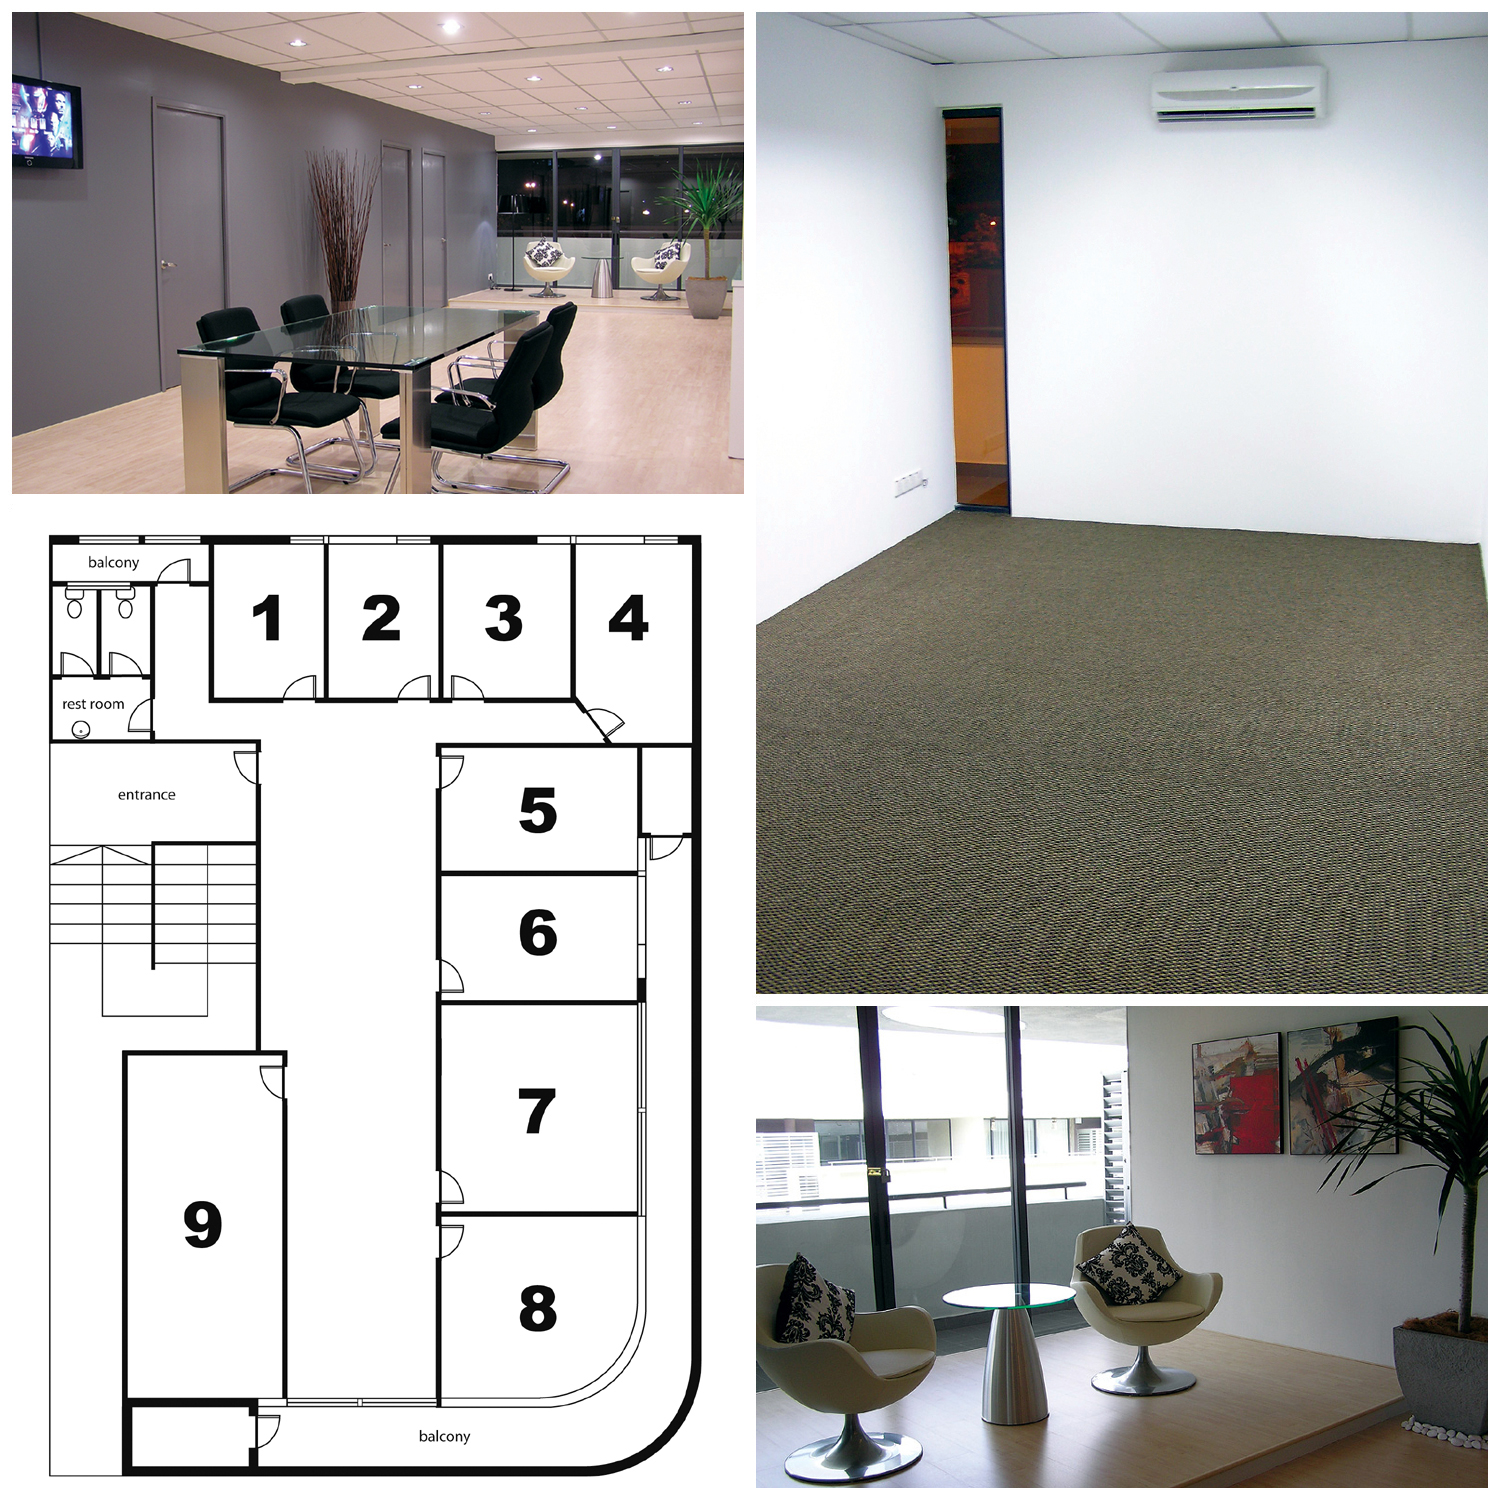 Commercial shared office work space for rent in kuala lumpur room 9 coworking space small - Shared office space for rent ...